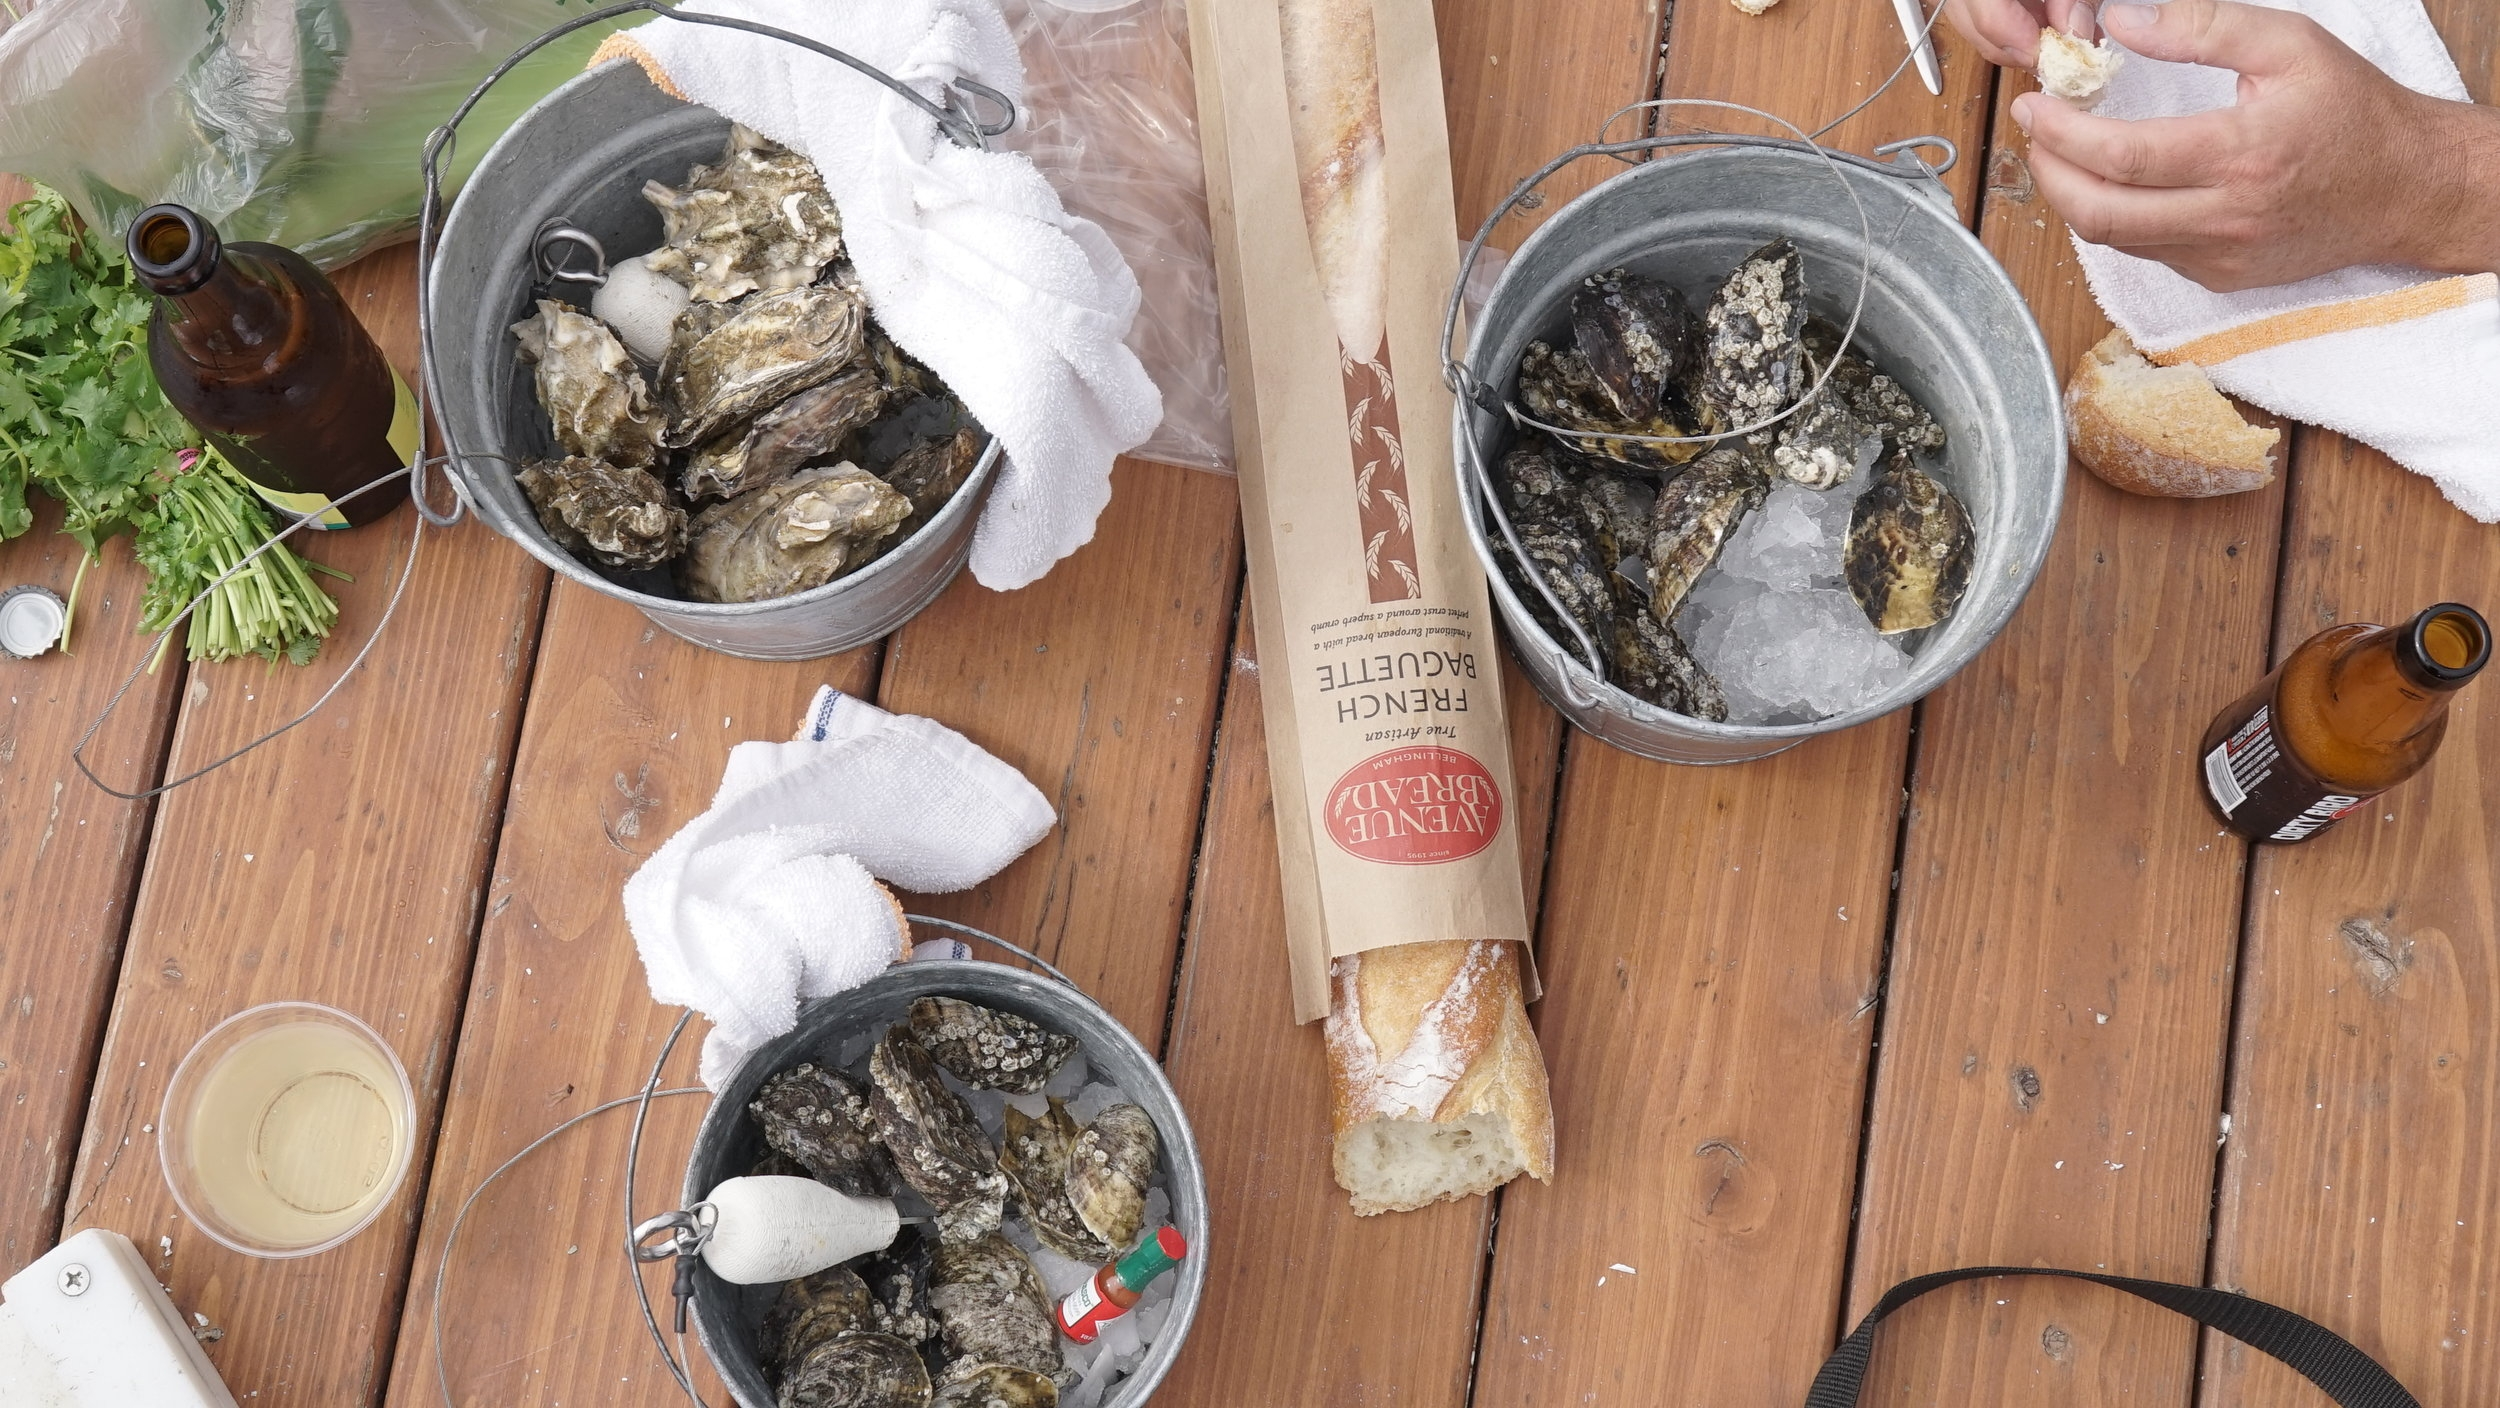 A little afraid of your knife skills? Don't worry, Taylor Shellfish tells you exactly  how to shuck an oyster .